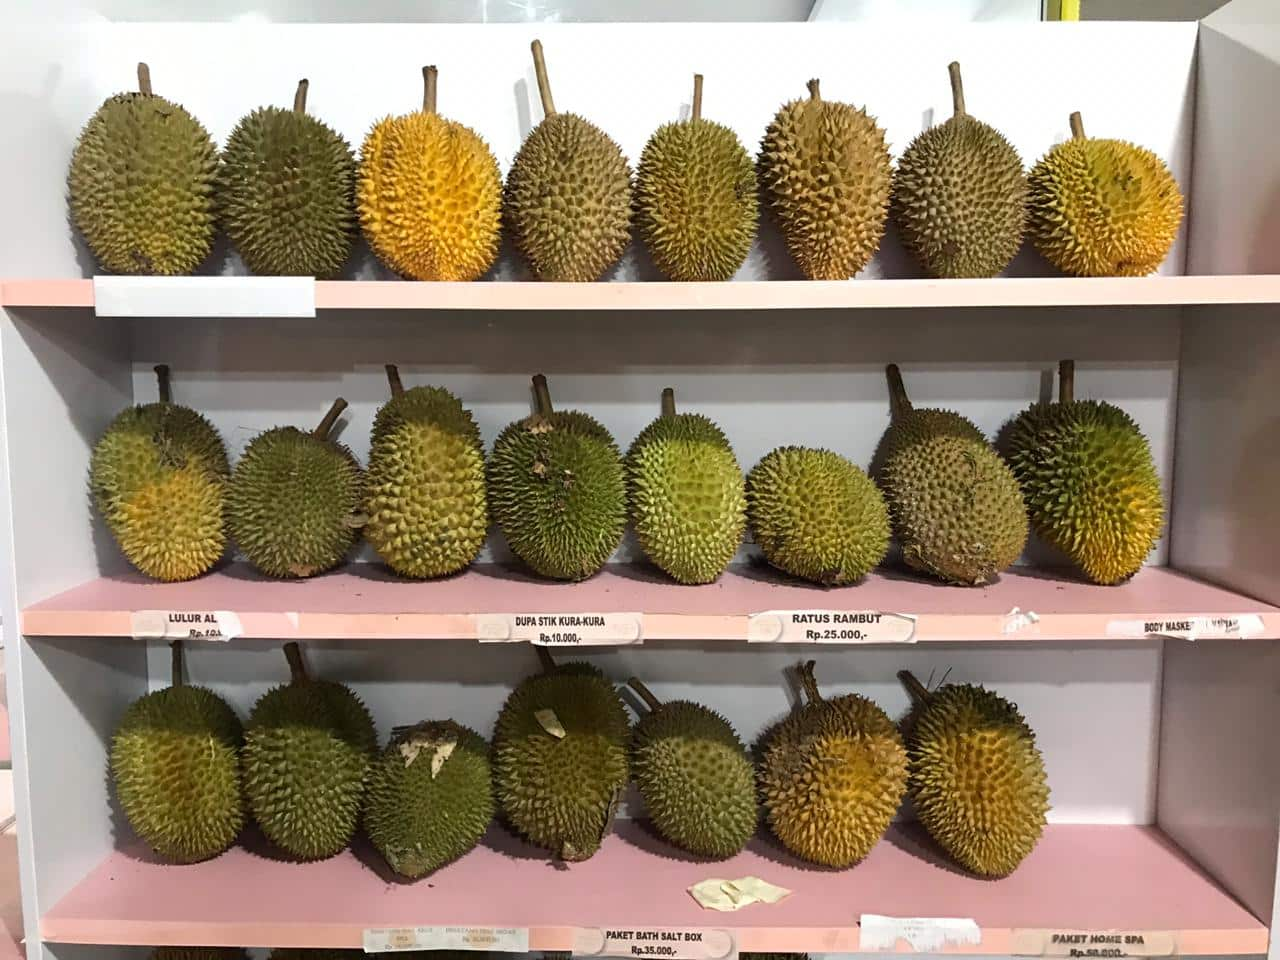 supplier durian medan